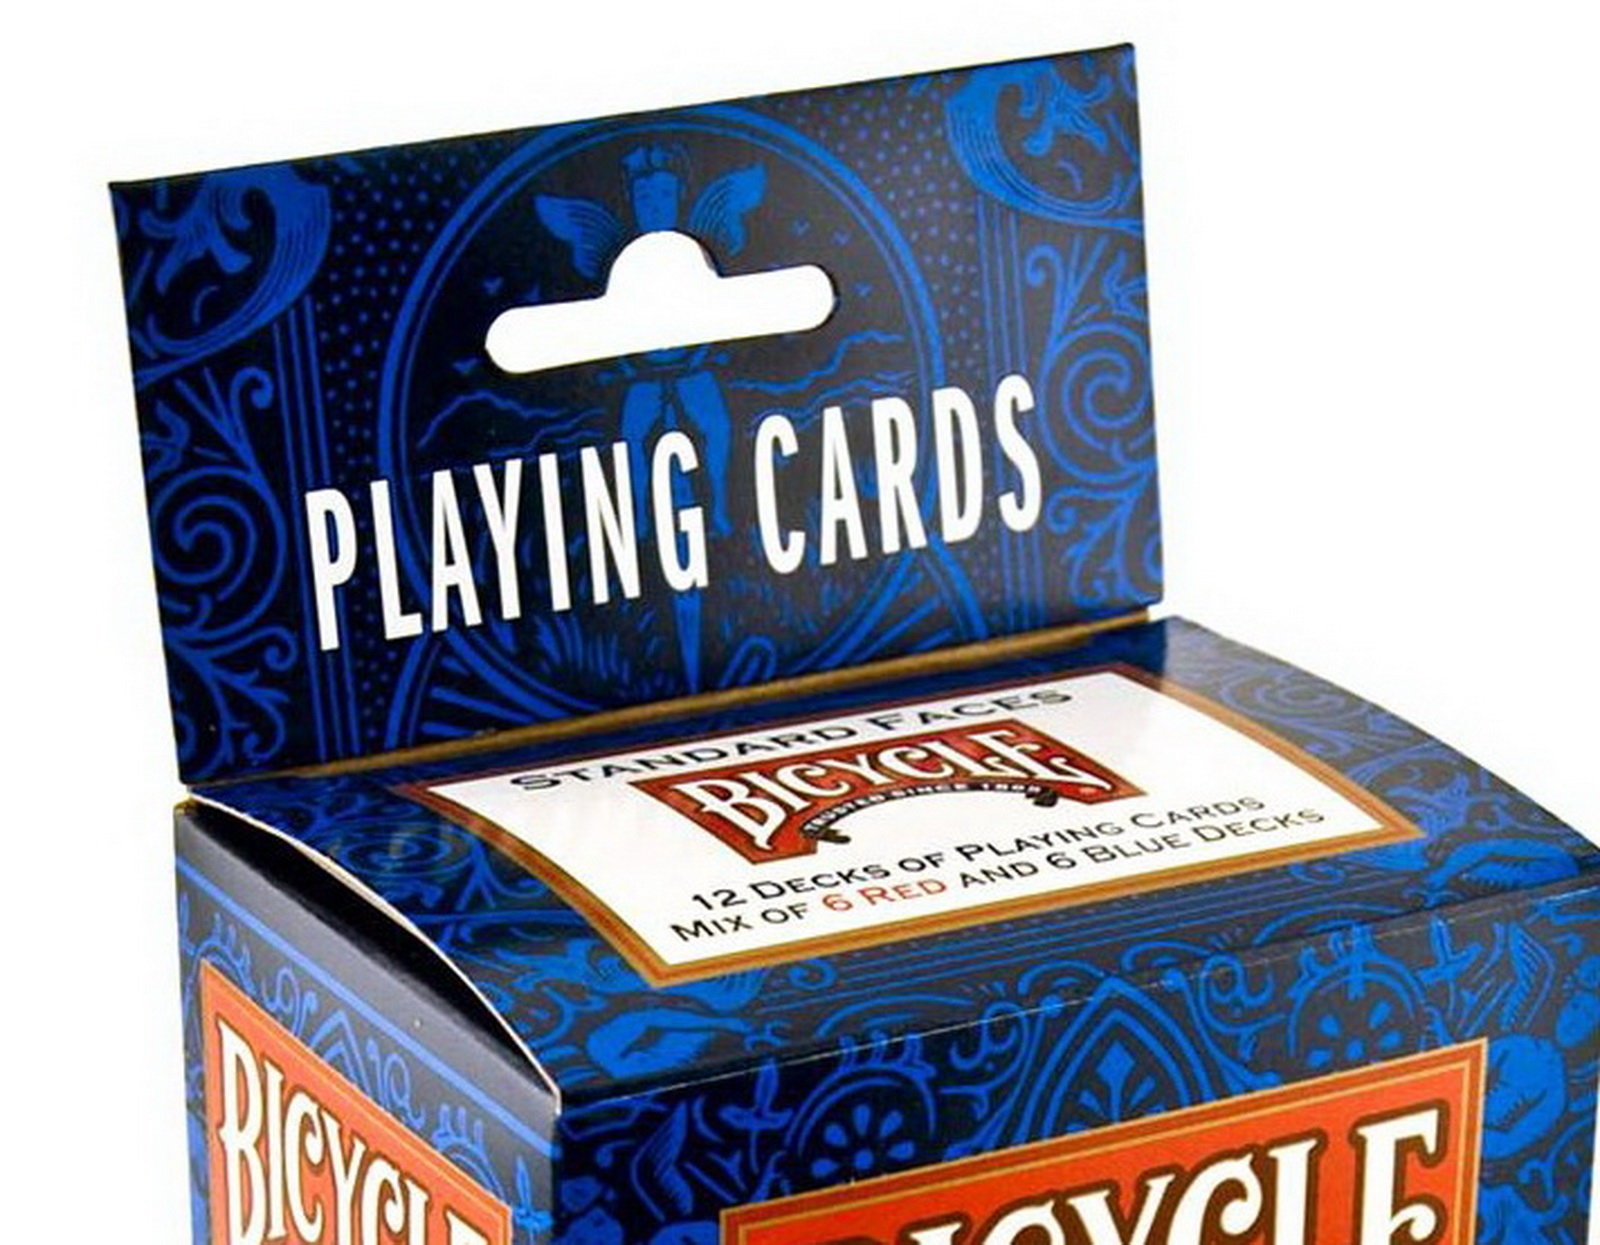 Cards 12 Decks Bicycle Standard Playing Cards 12 packs 6 Red 6 Blue